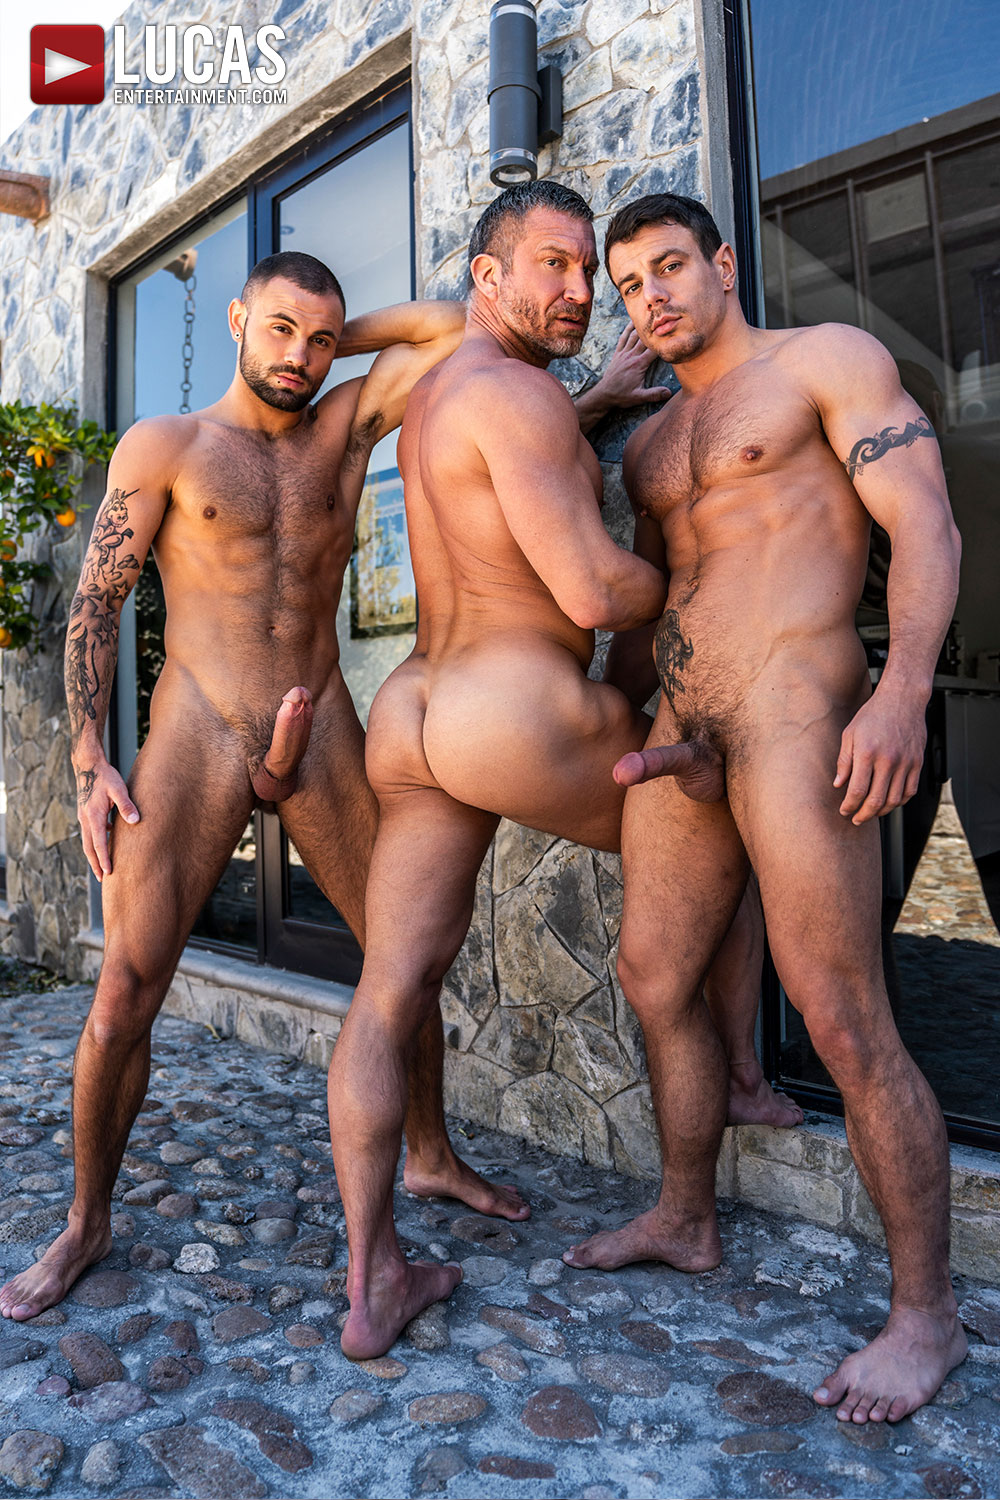 Tomas Brand: Muscle Daddy King - Gay Movies - Lucas Entertainment